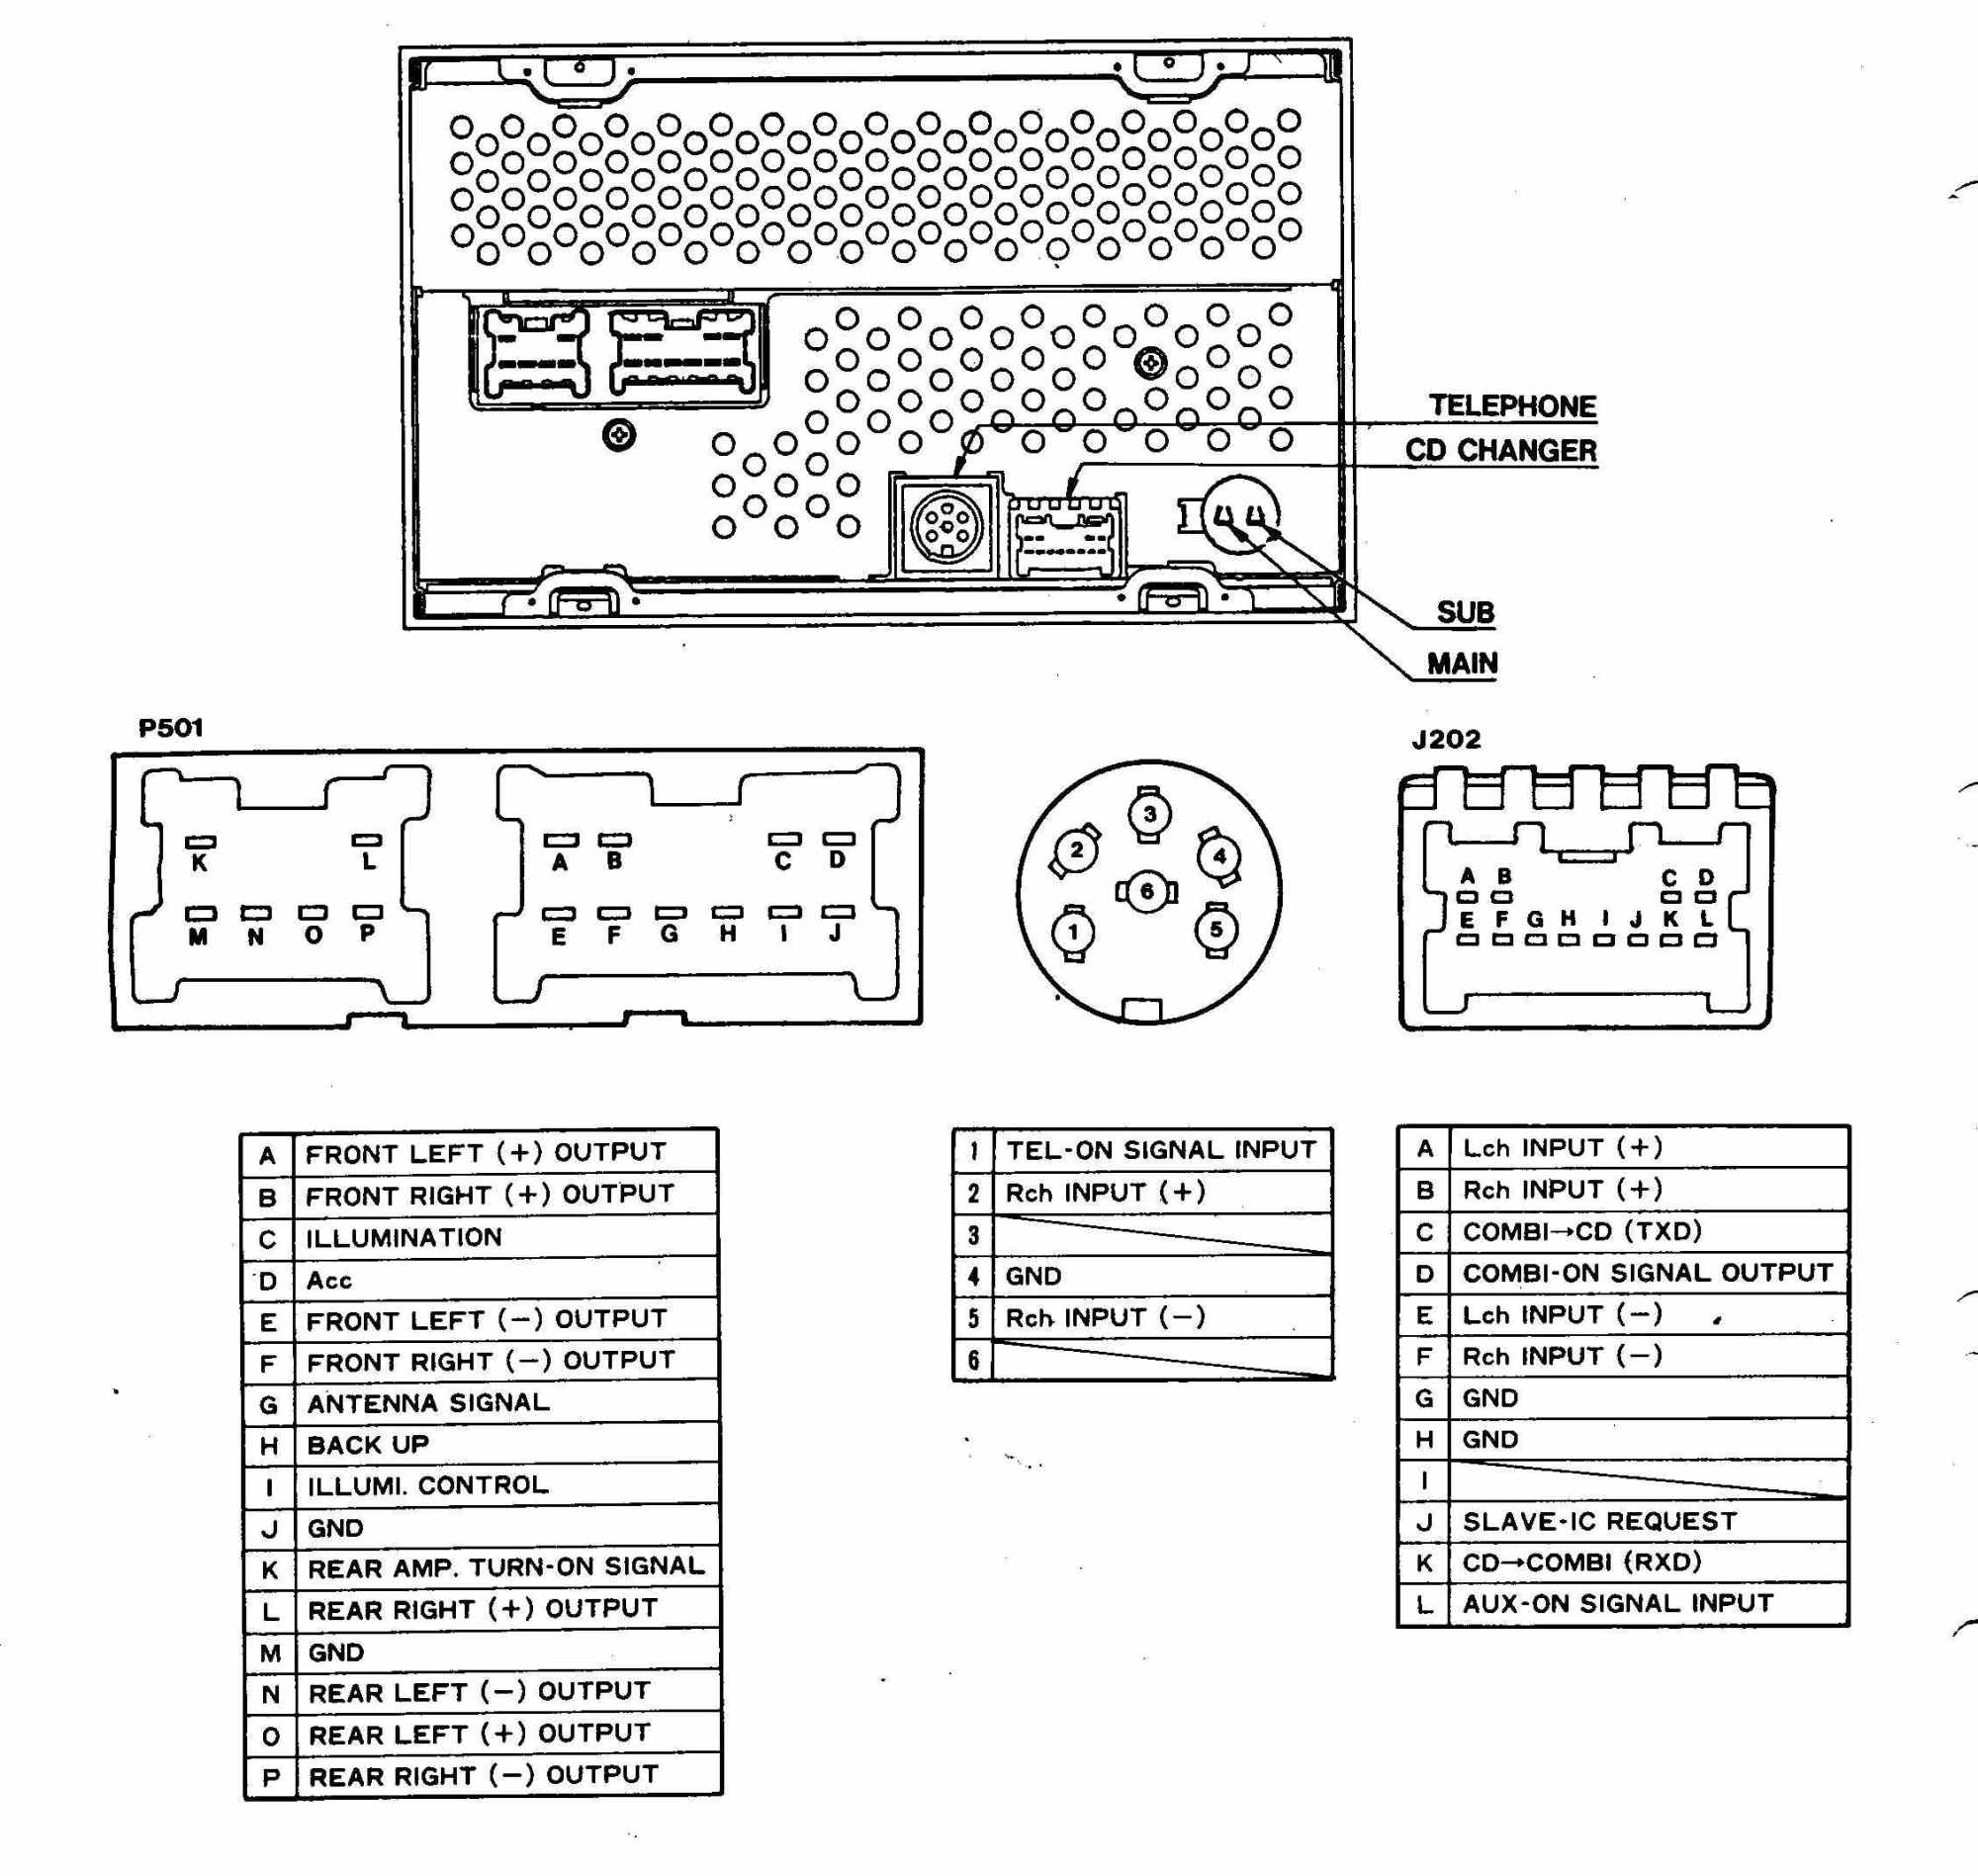 hight resolution of 1994 nissan altima fuse box diagram wiring diagrams box 2000 nissan pathfinder fuse diagram 1993 nissan